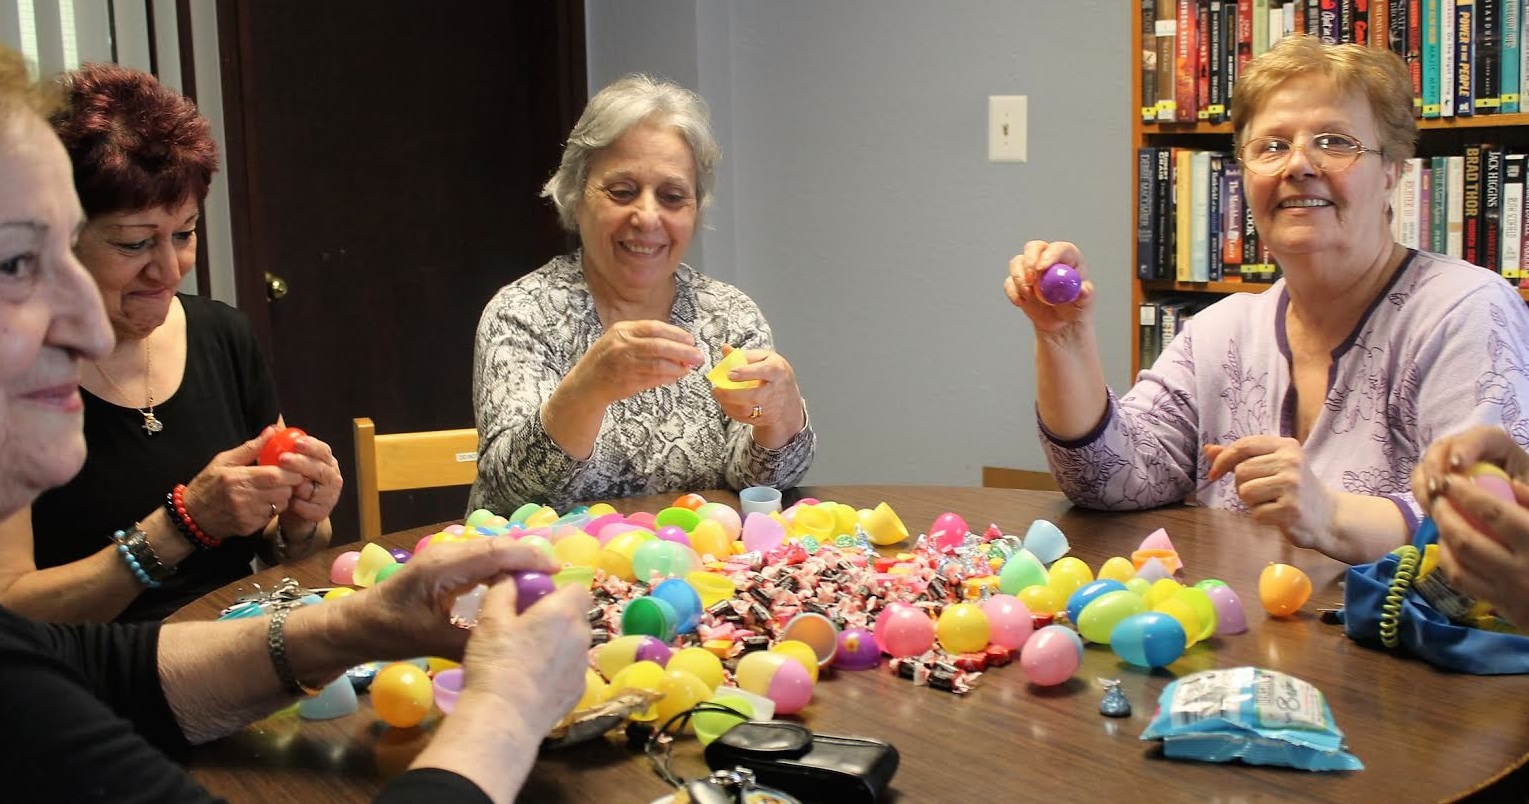 Residents of Walled Lake Villa stuff plastic eggs for the Walled Lake City Easter Egg Hunt. From left: Luma Jabry, Diana Yousif, Rafaa Abodi and Suhair Ayob. Not pictured are Joyce McBride and Virginia Schuman. The event is noon Saturday, March 26, at Hiram Sims Park for children 12 and under. PHOTO/JACQUELINE RONDEAU